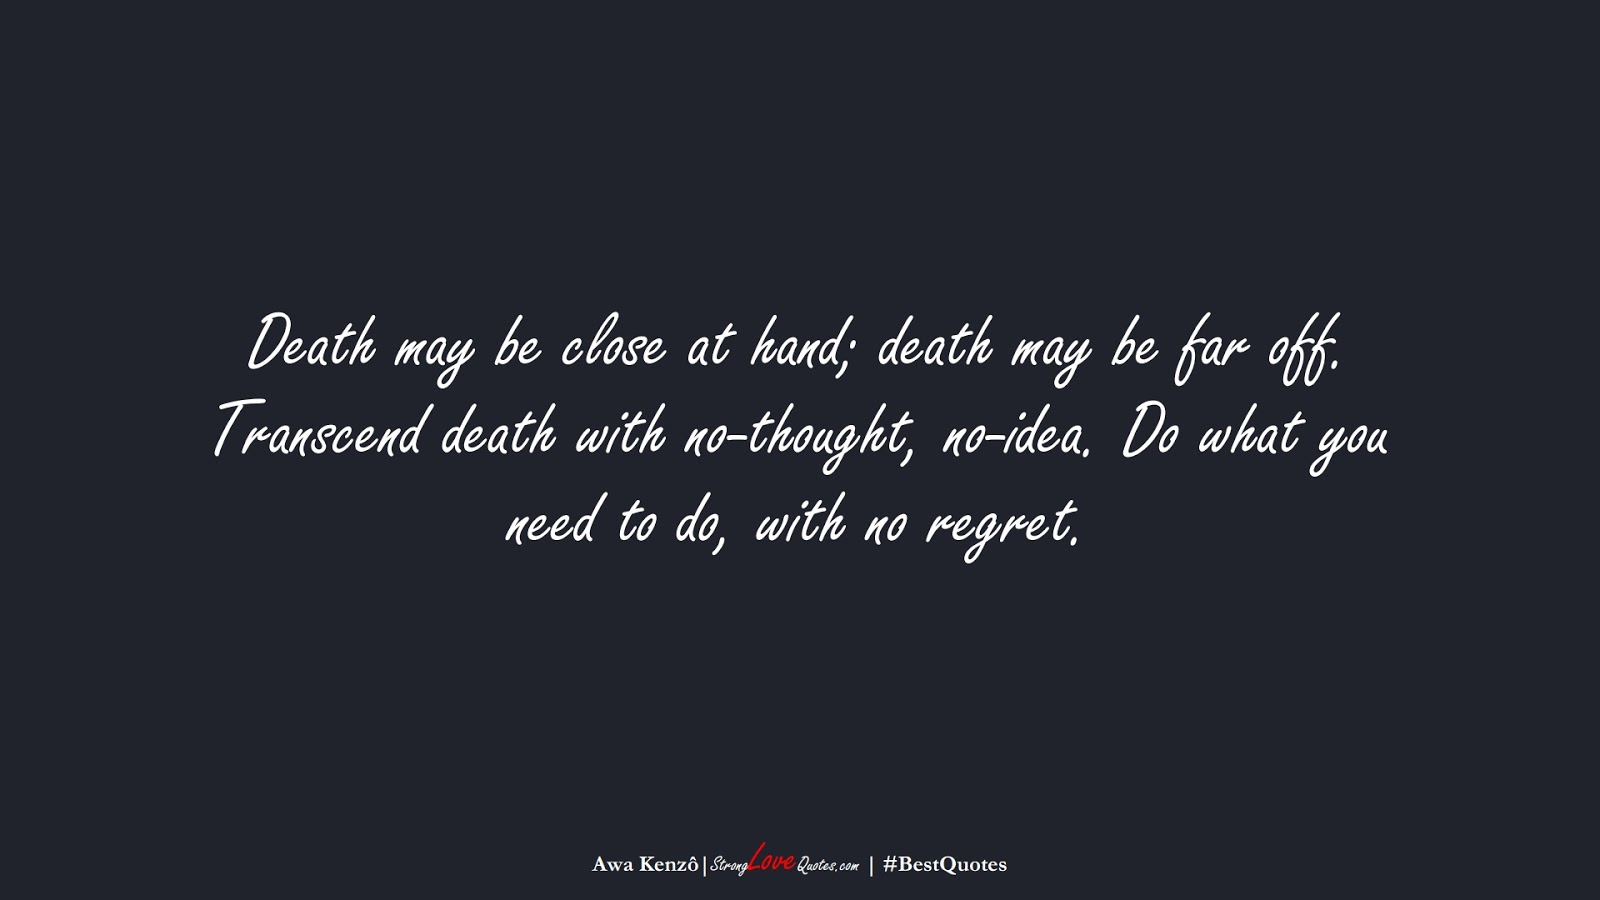 Death may be close at hand; death may be far off. Transcend death with no-thought, no-idea. Do what you need to do, with no regret. (Awa Kenzô);  #BestQuotes